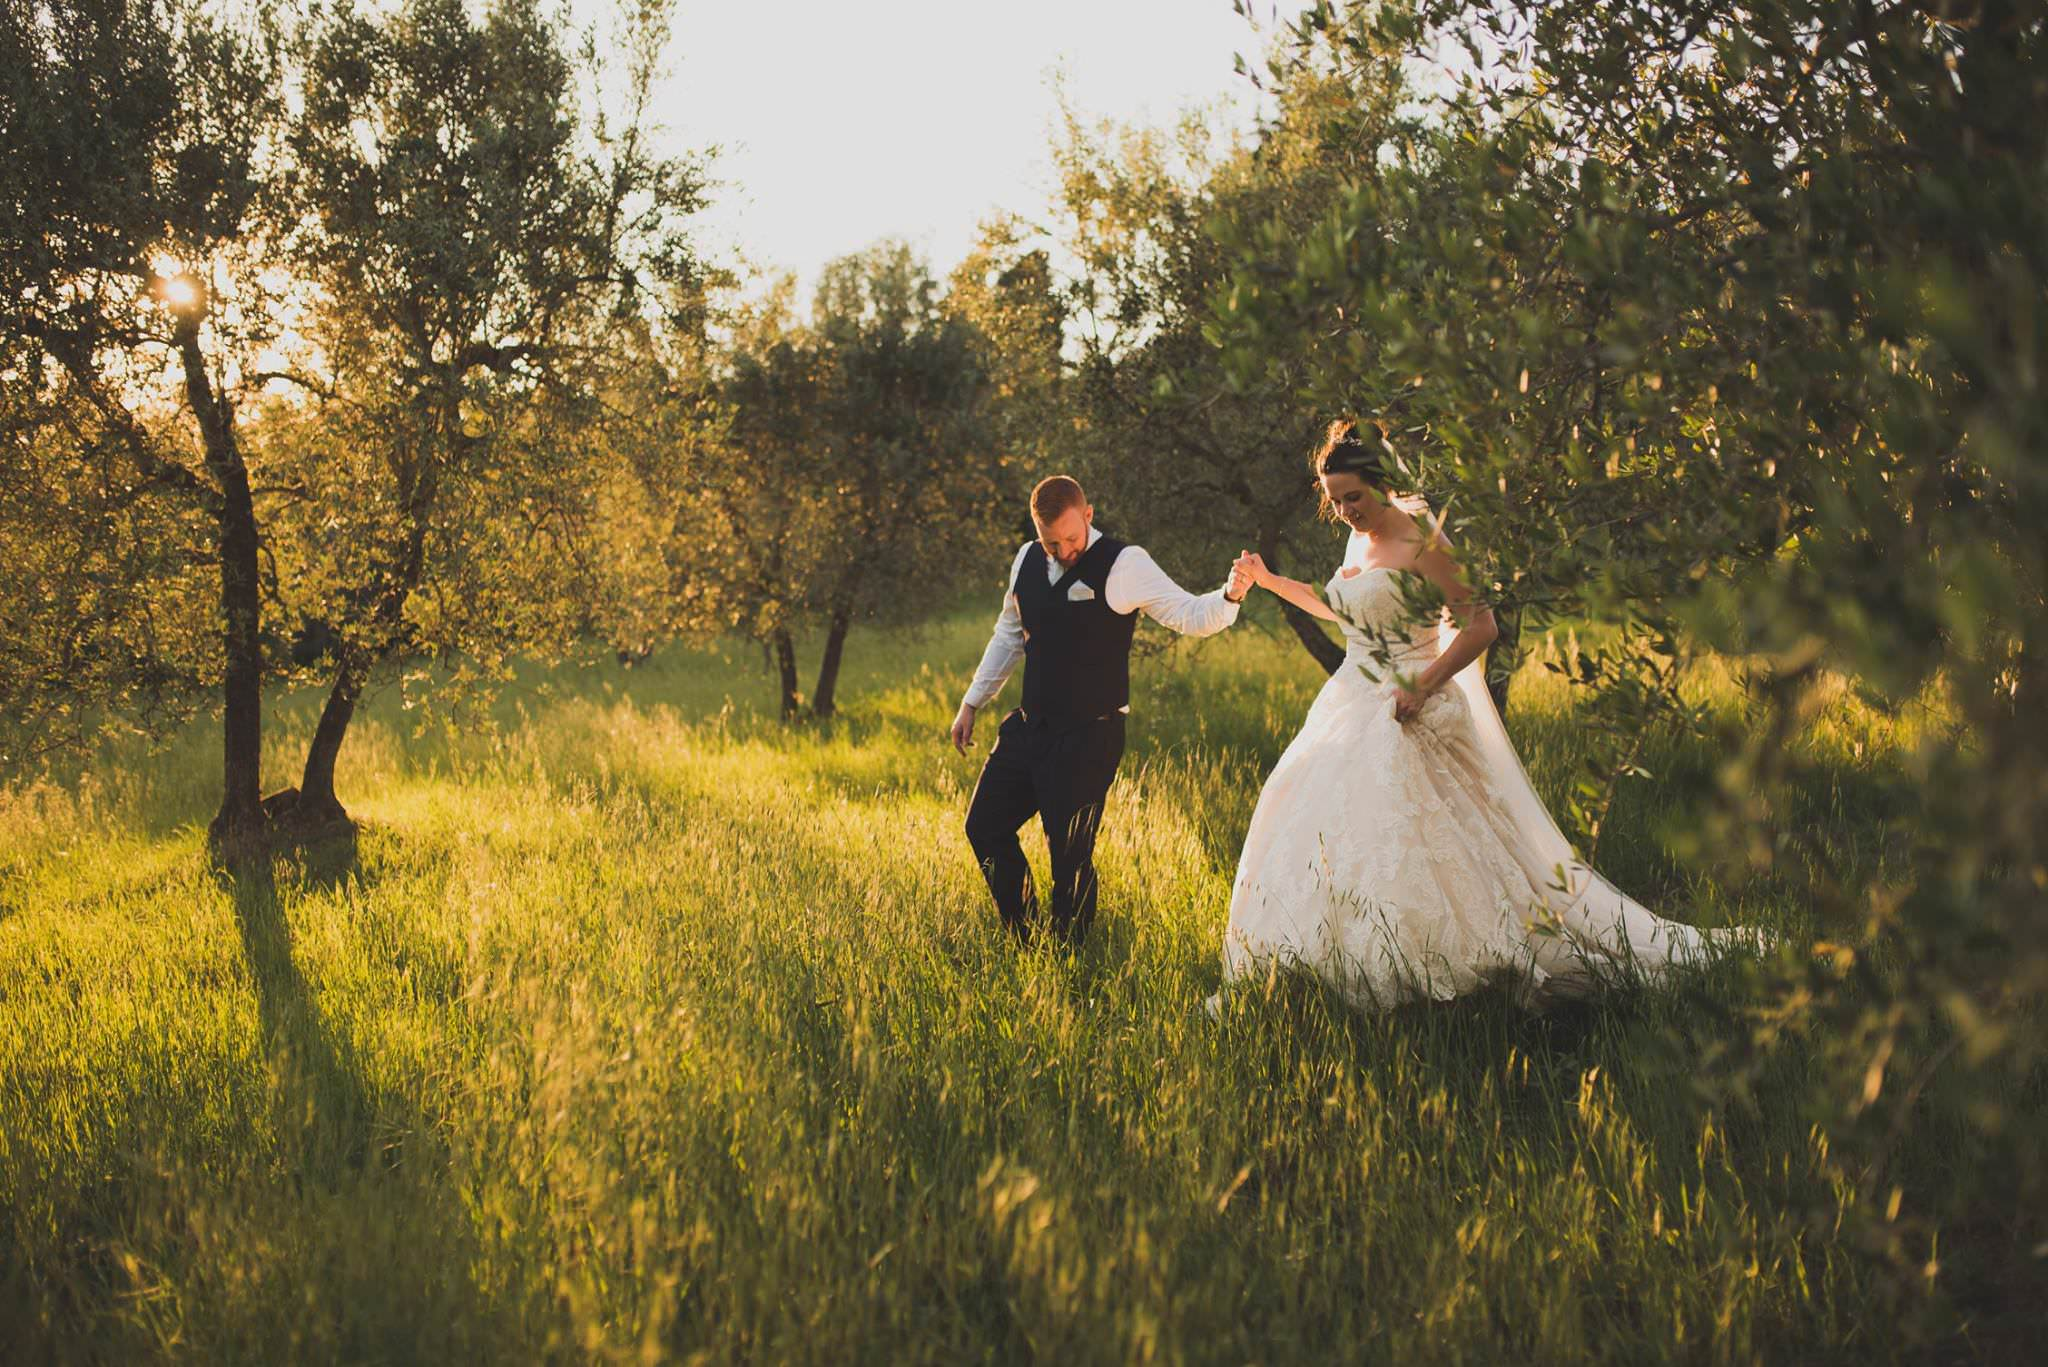 Drain fly larvae pictures Engagement photography shoot included free in our wedding